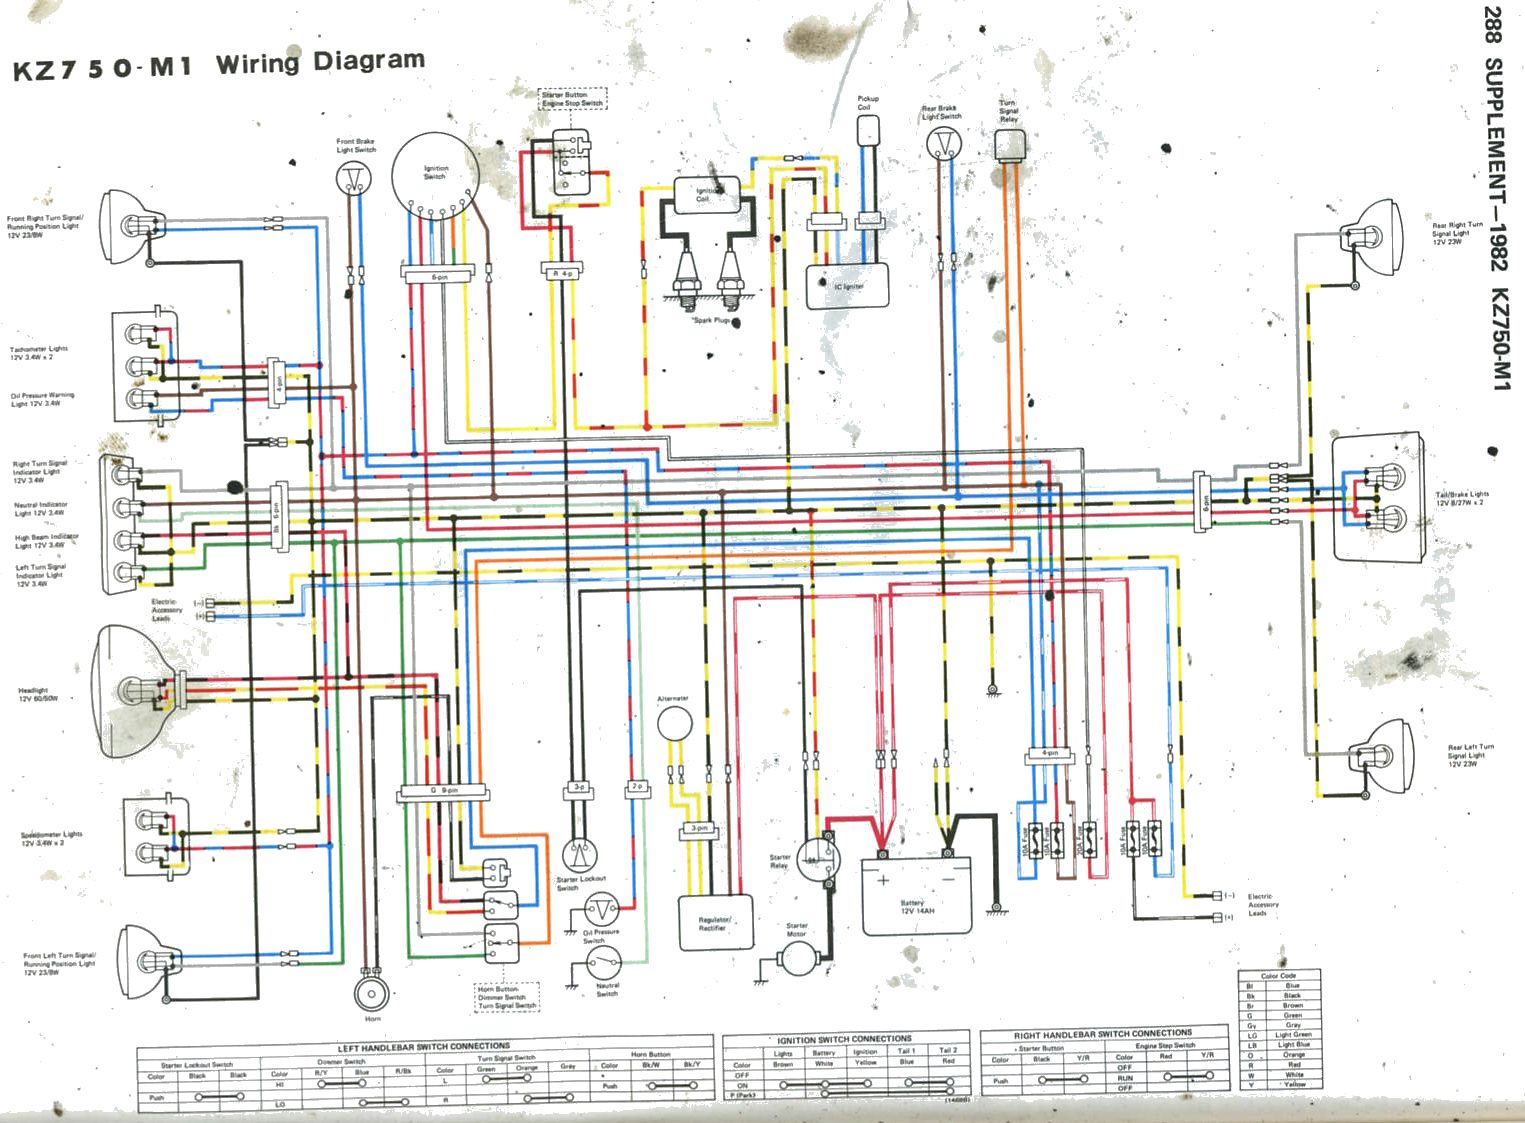 82 kz1000 wiring diagram wiring diagram schematics 2004 chevy colorado fuses  diagram 1982 ignition switch wiring